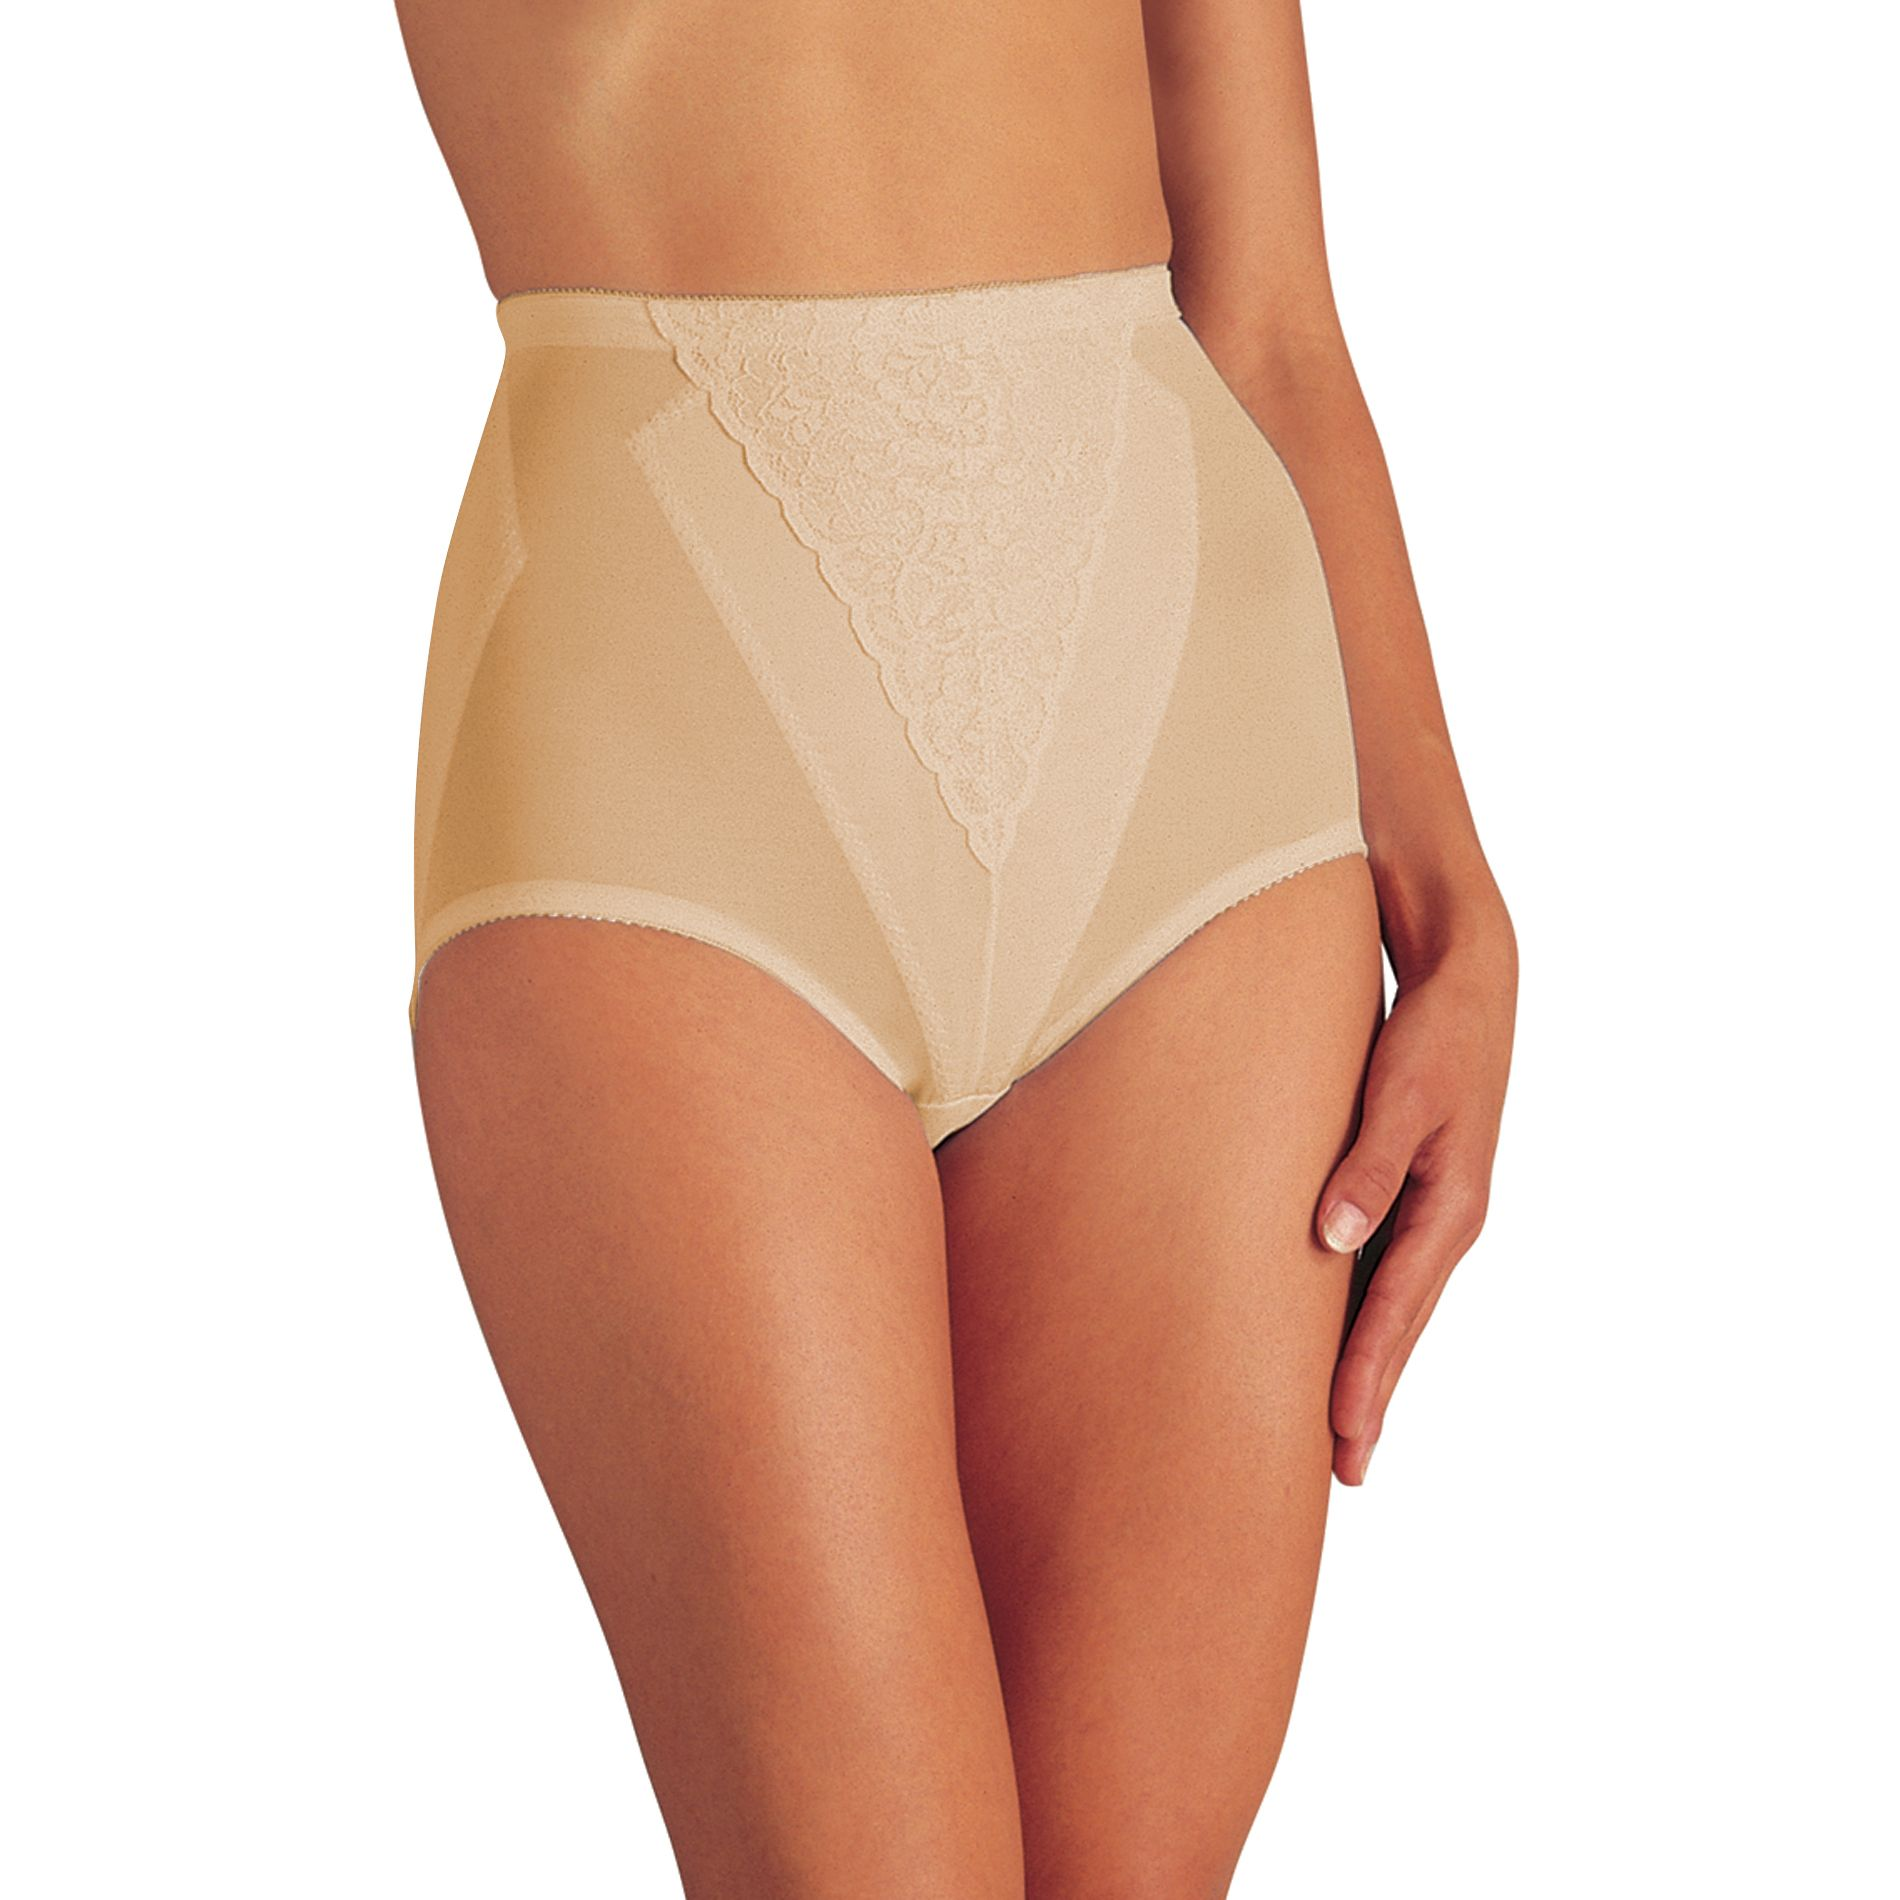 Women's Brief - Lace Panel